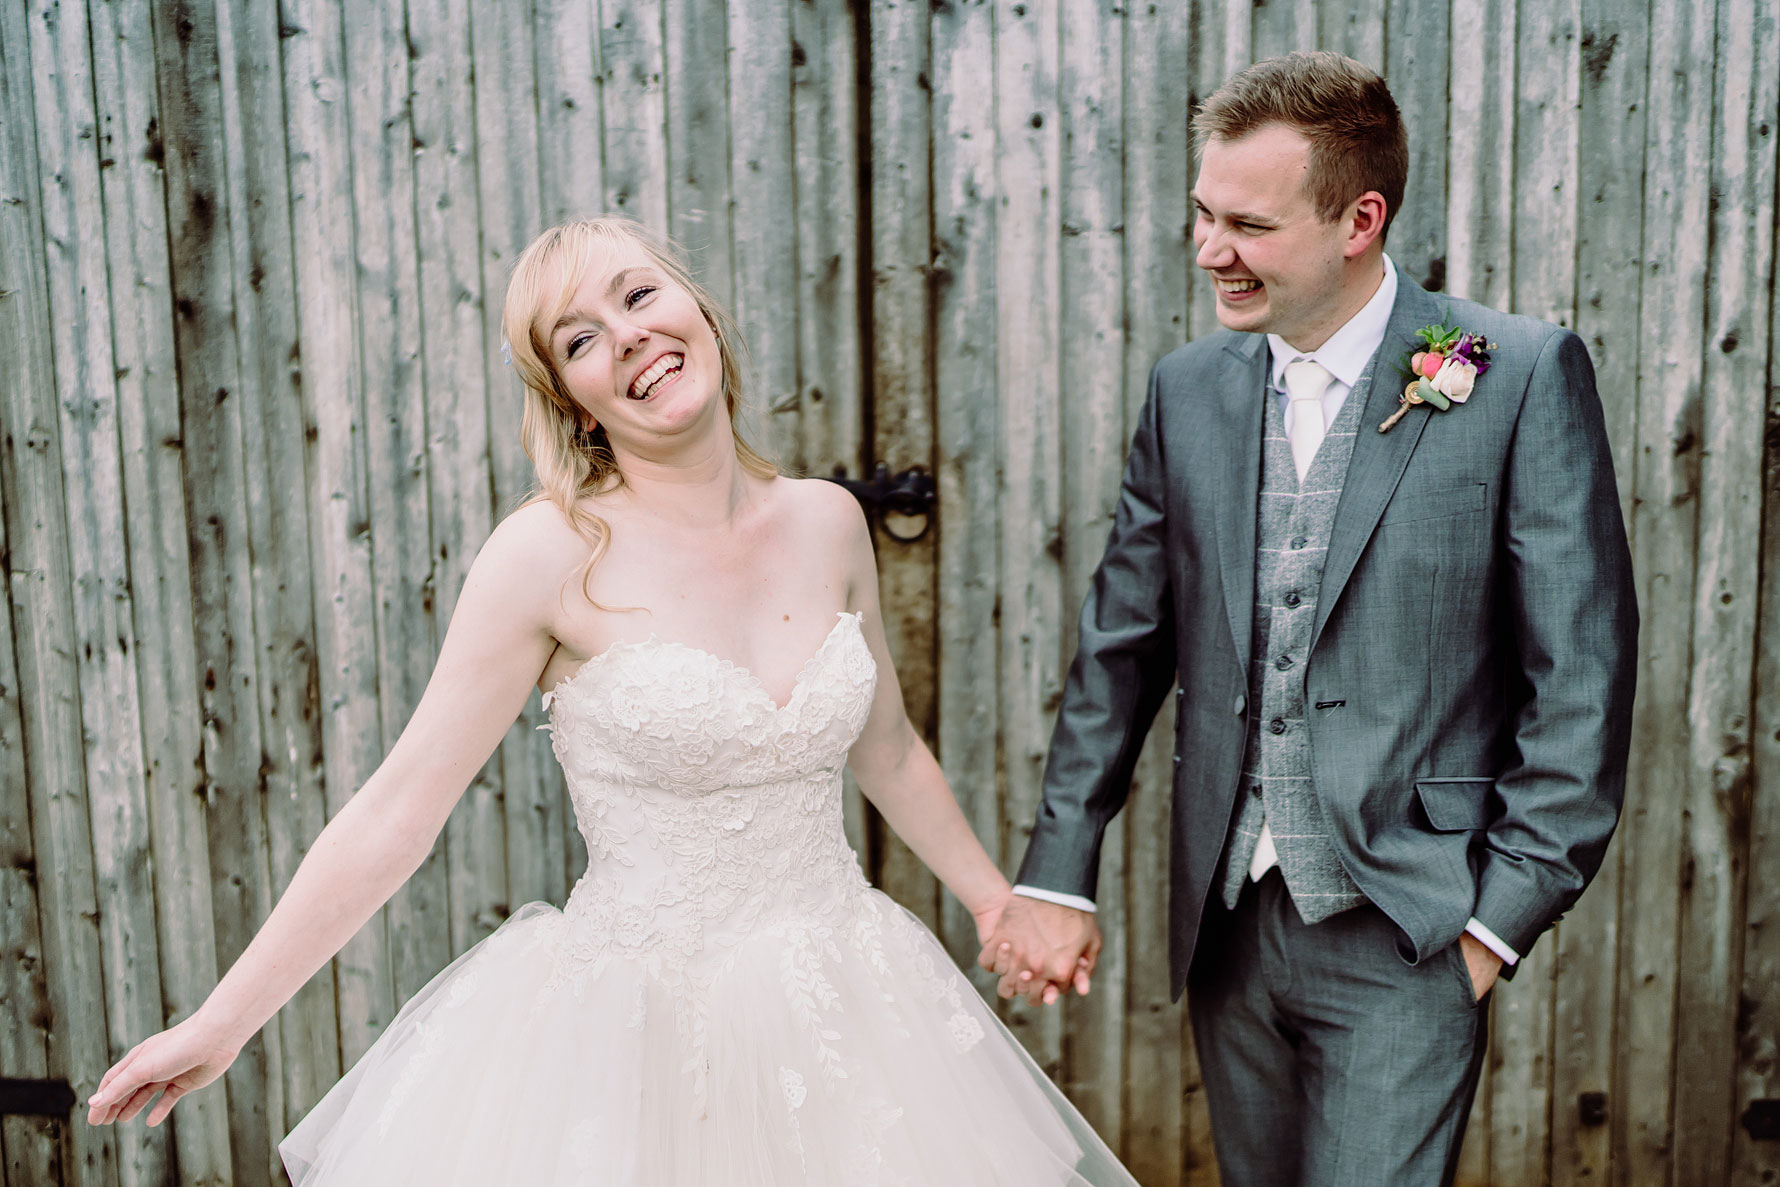 A happy couple share a moment during their wedding at dodford manor